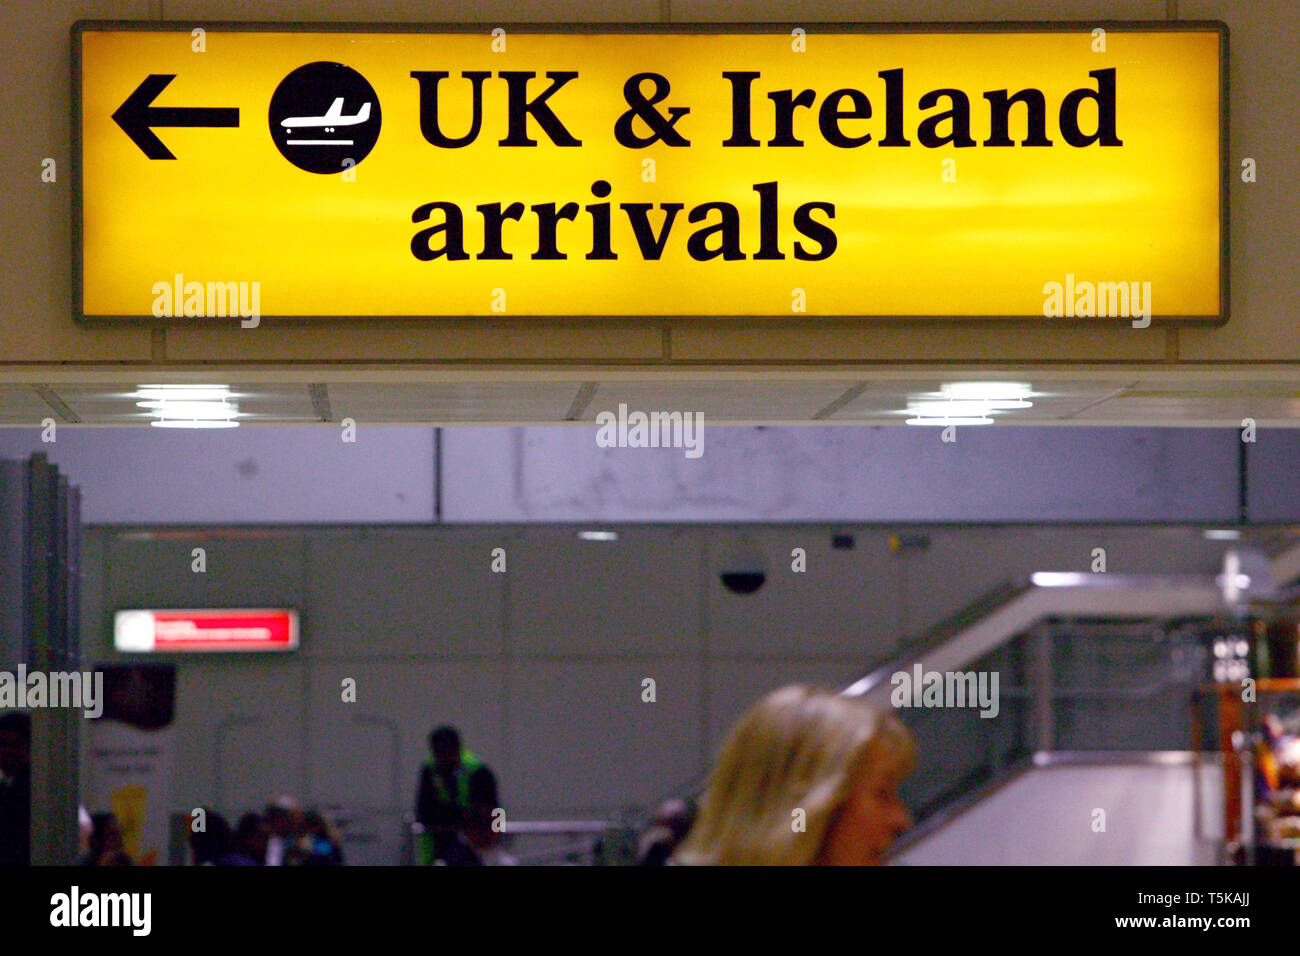 Arrivals at London Heathrow Terminal One. 16/05/2009 - Stock Image